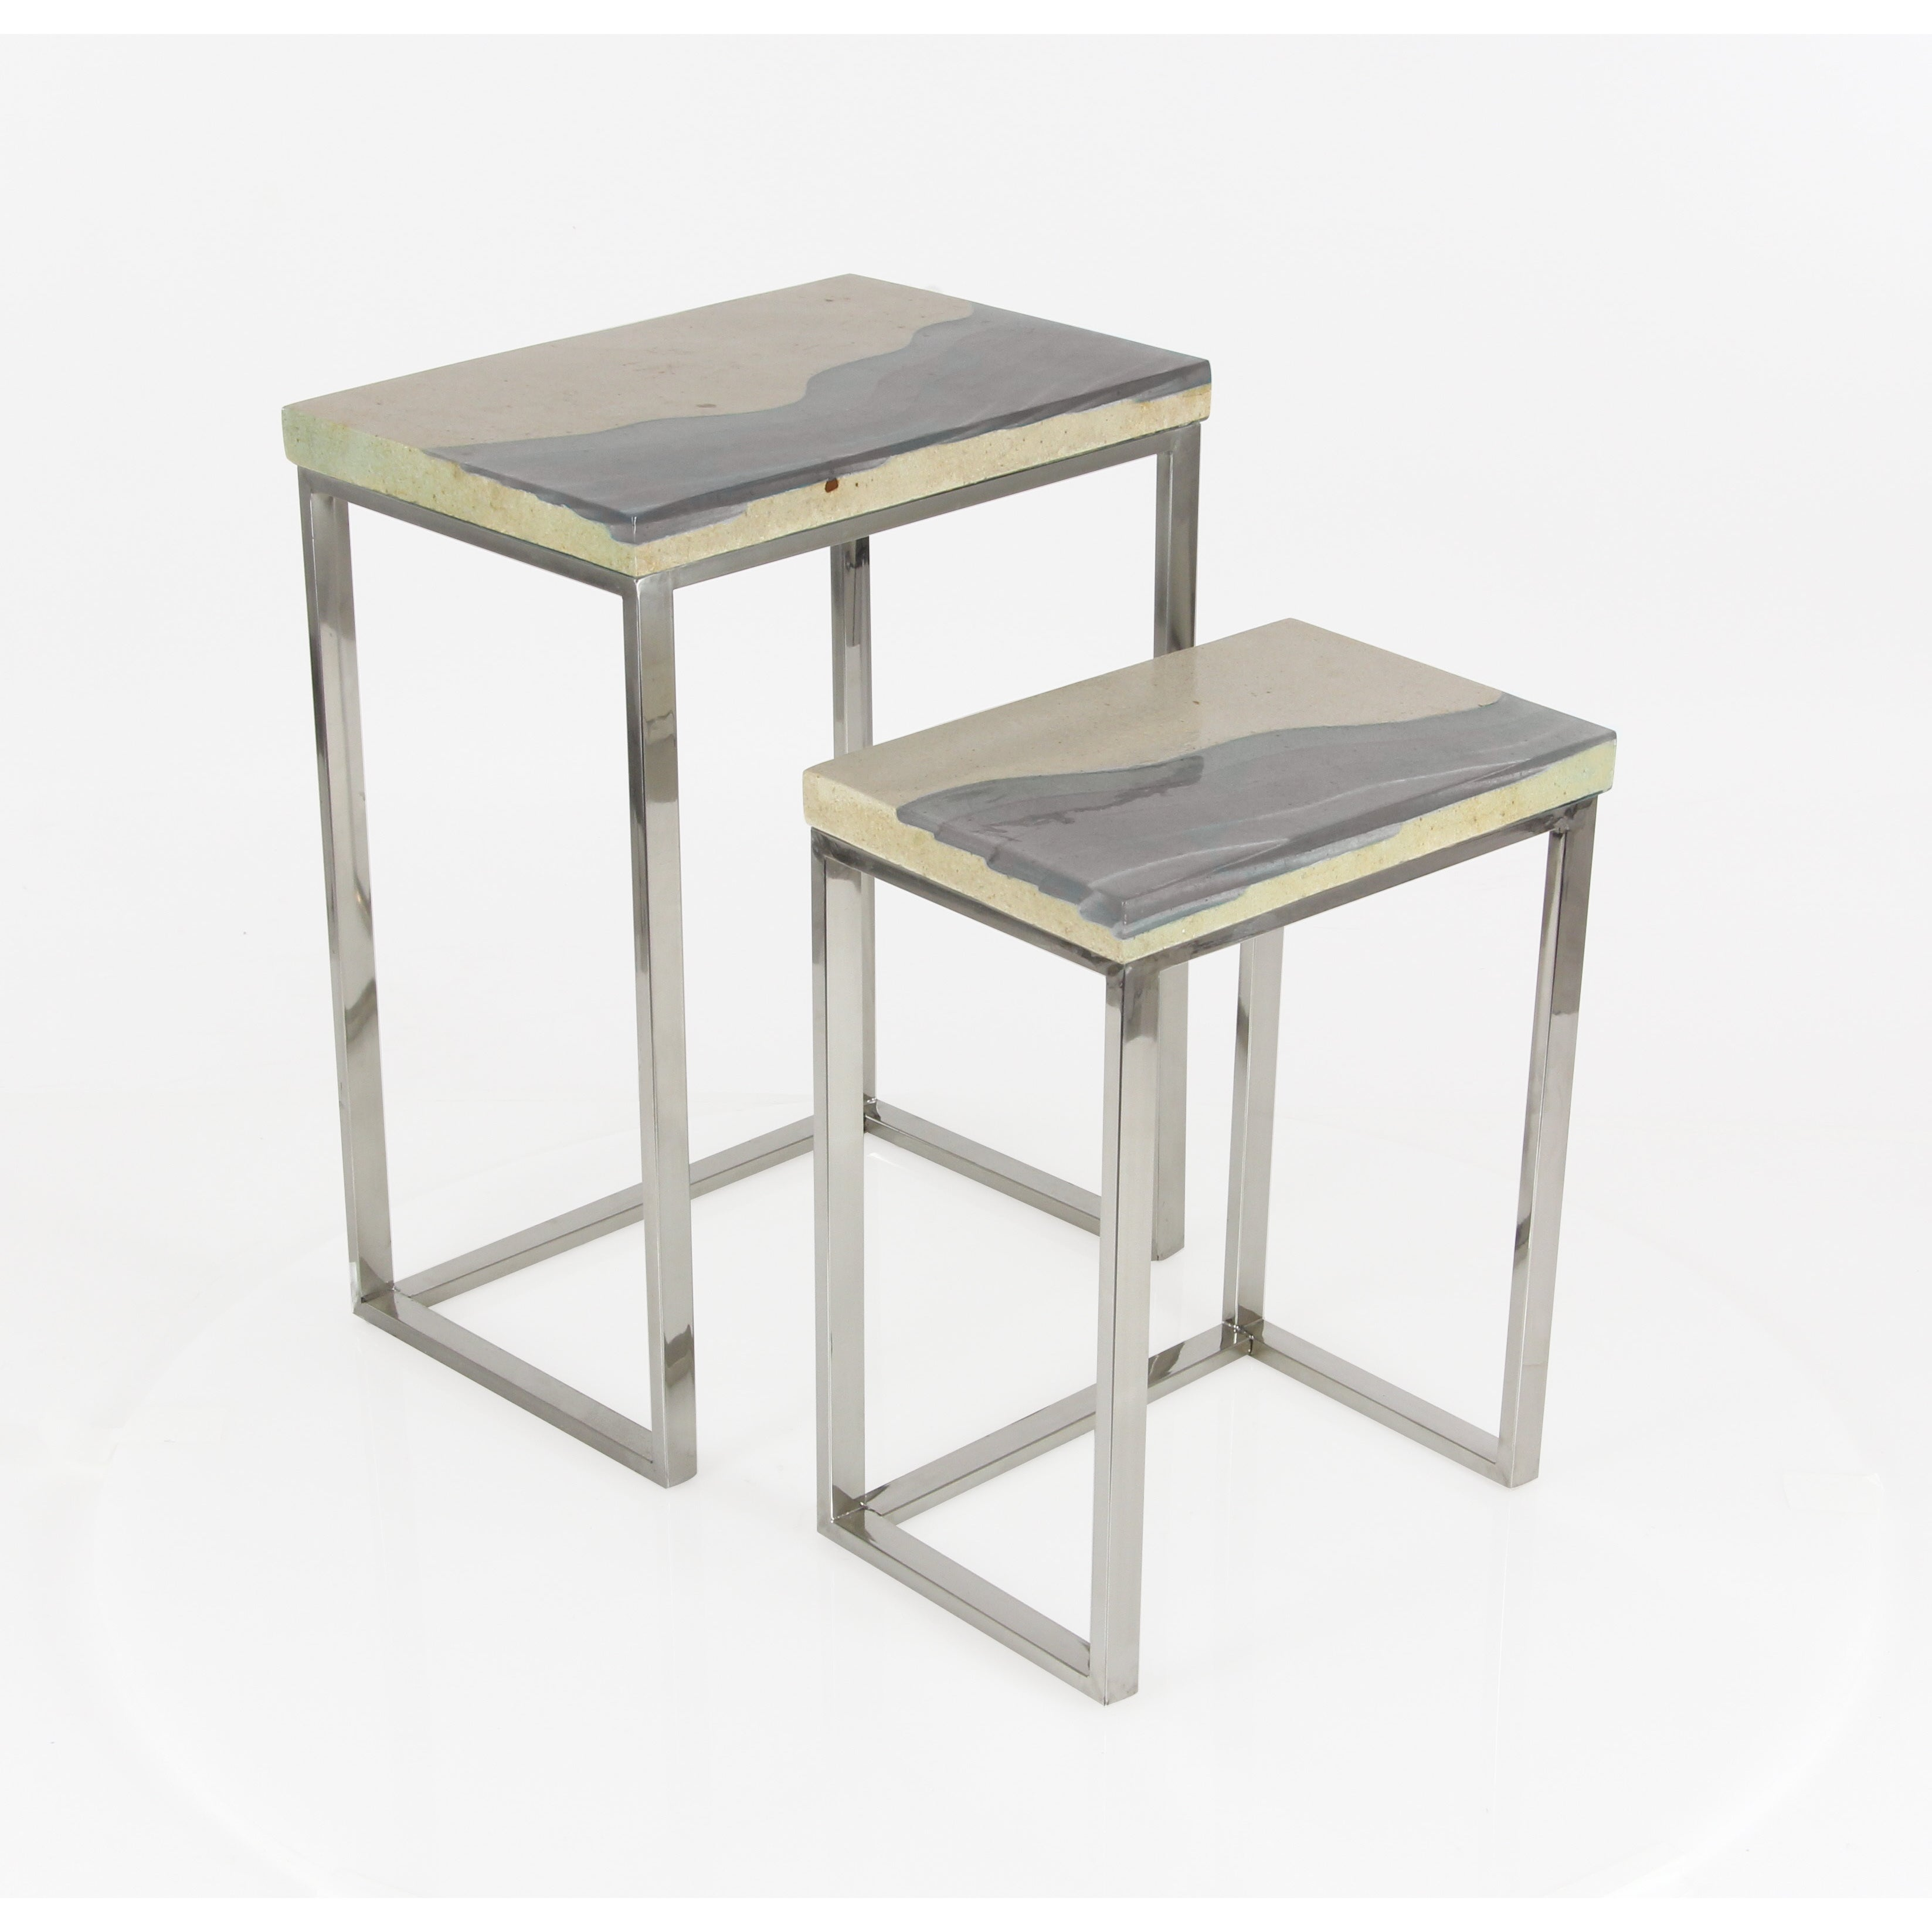 Beach Fancy Stainless Steel End Tables Set Of 2 Free Shipping Today 15097185